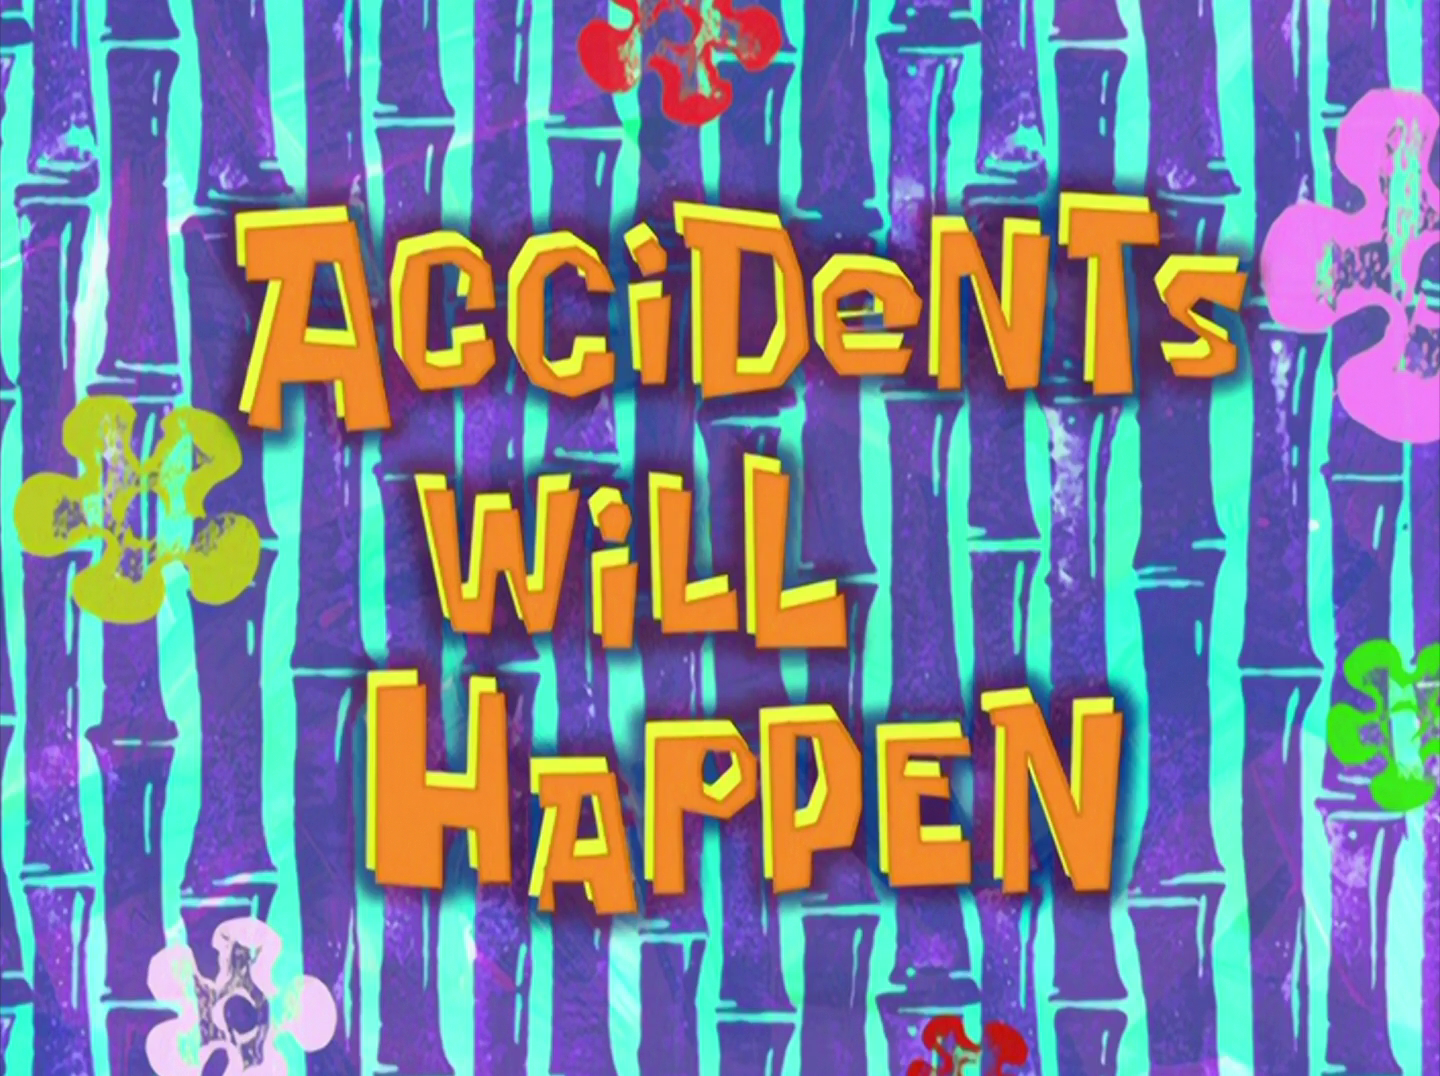 Accidents Will Happen (SpongeBob SquarePants)